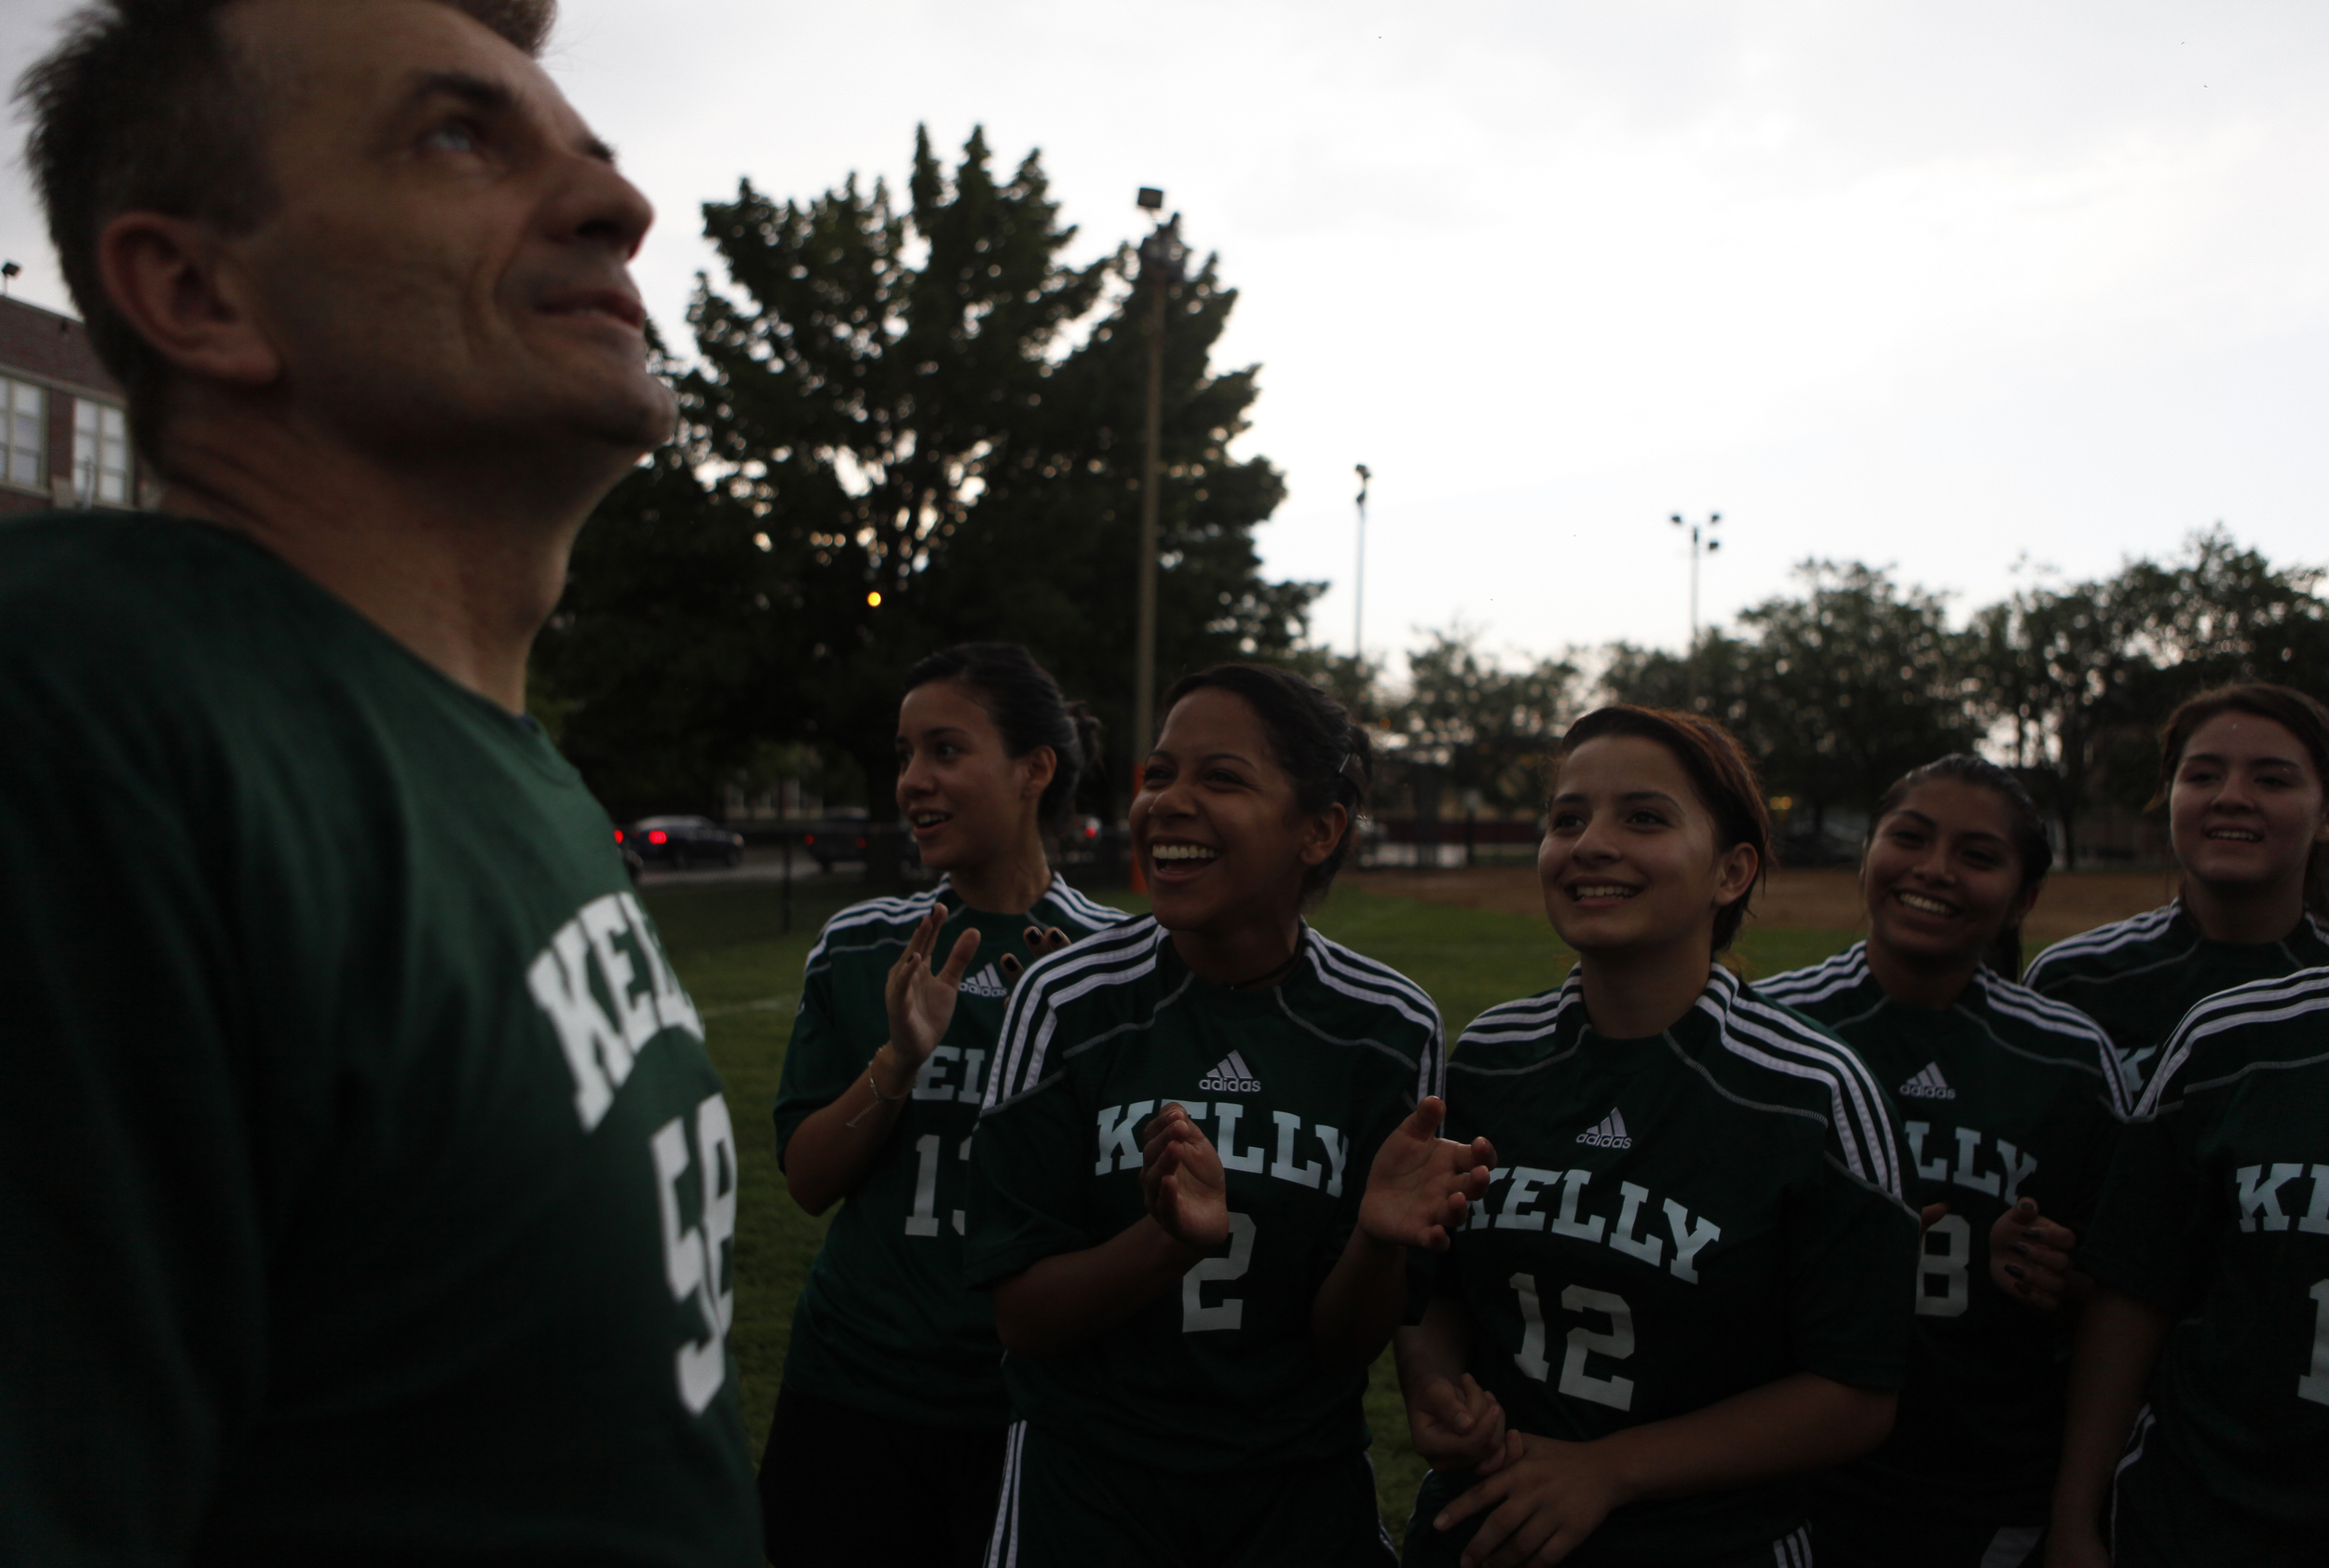 Head Coach Stan Mietus looks up at the stormy sky as the girls chant during practice in front of the Kelly High School in Chicago on Tuesday, June 11, 2013. They were counting the number of seconds after a thunder clap to see if there was going to be lightning since they did not want practice to end. The Kelly High School girls varsity soccer team is almost entirely first-generation Hispanic Americans. Many of the girls struggle to convince their parents to allow them to play soccer.